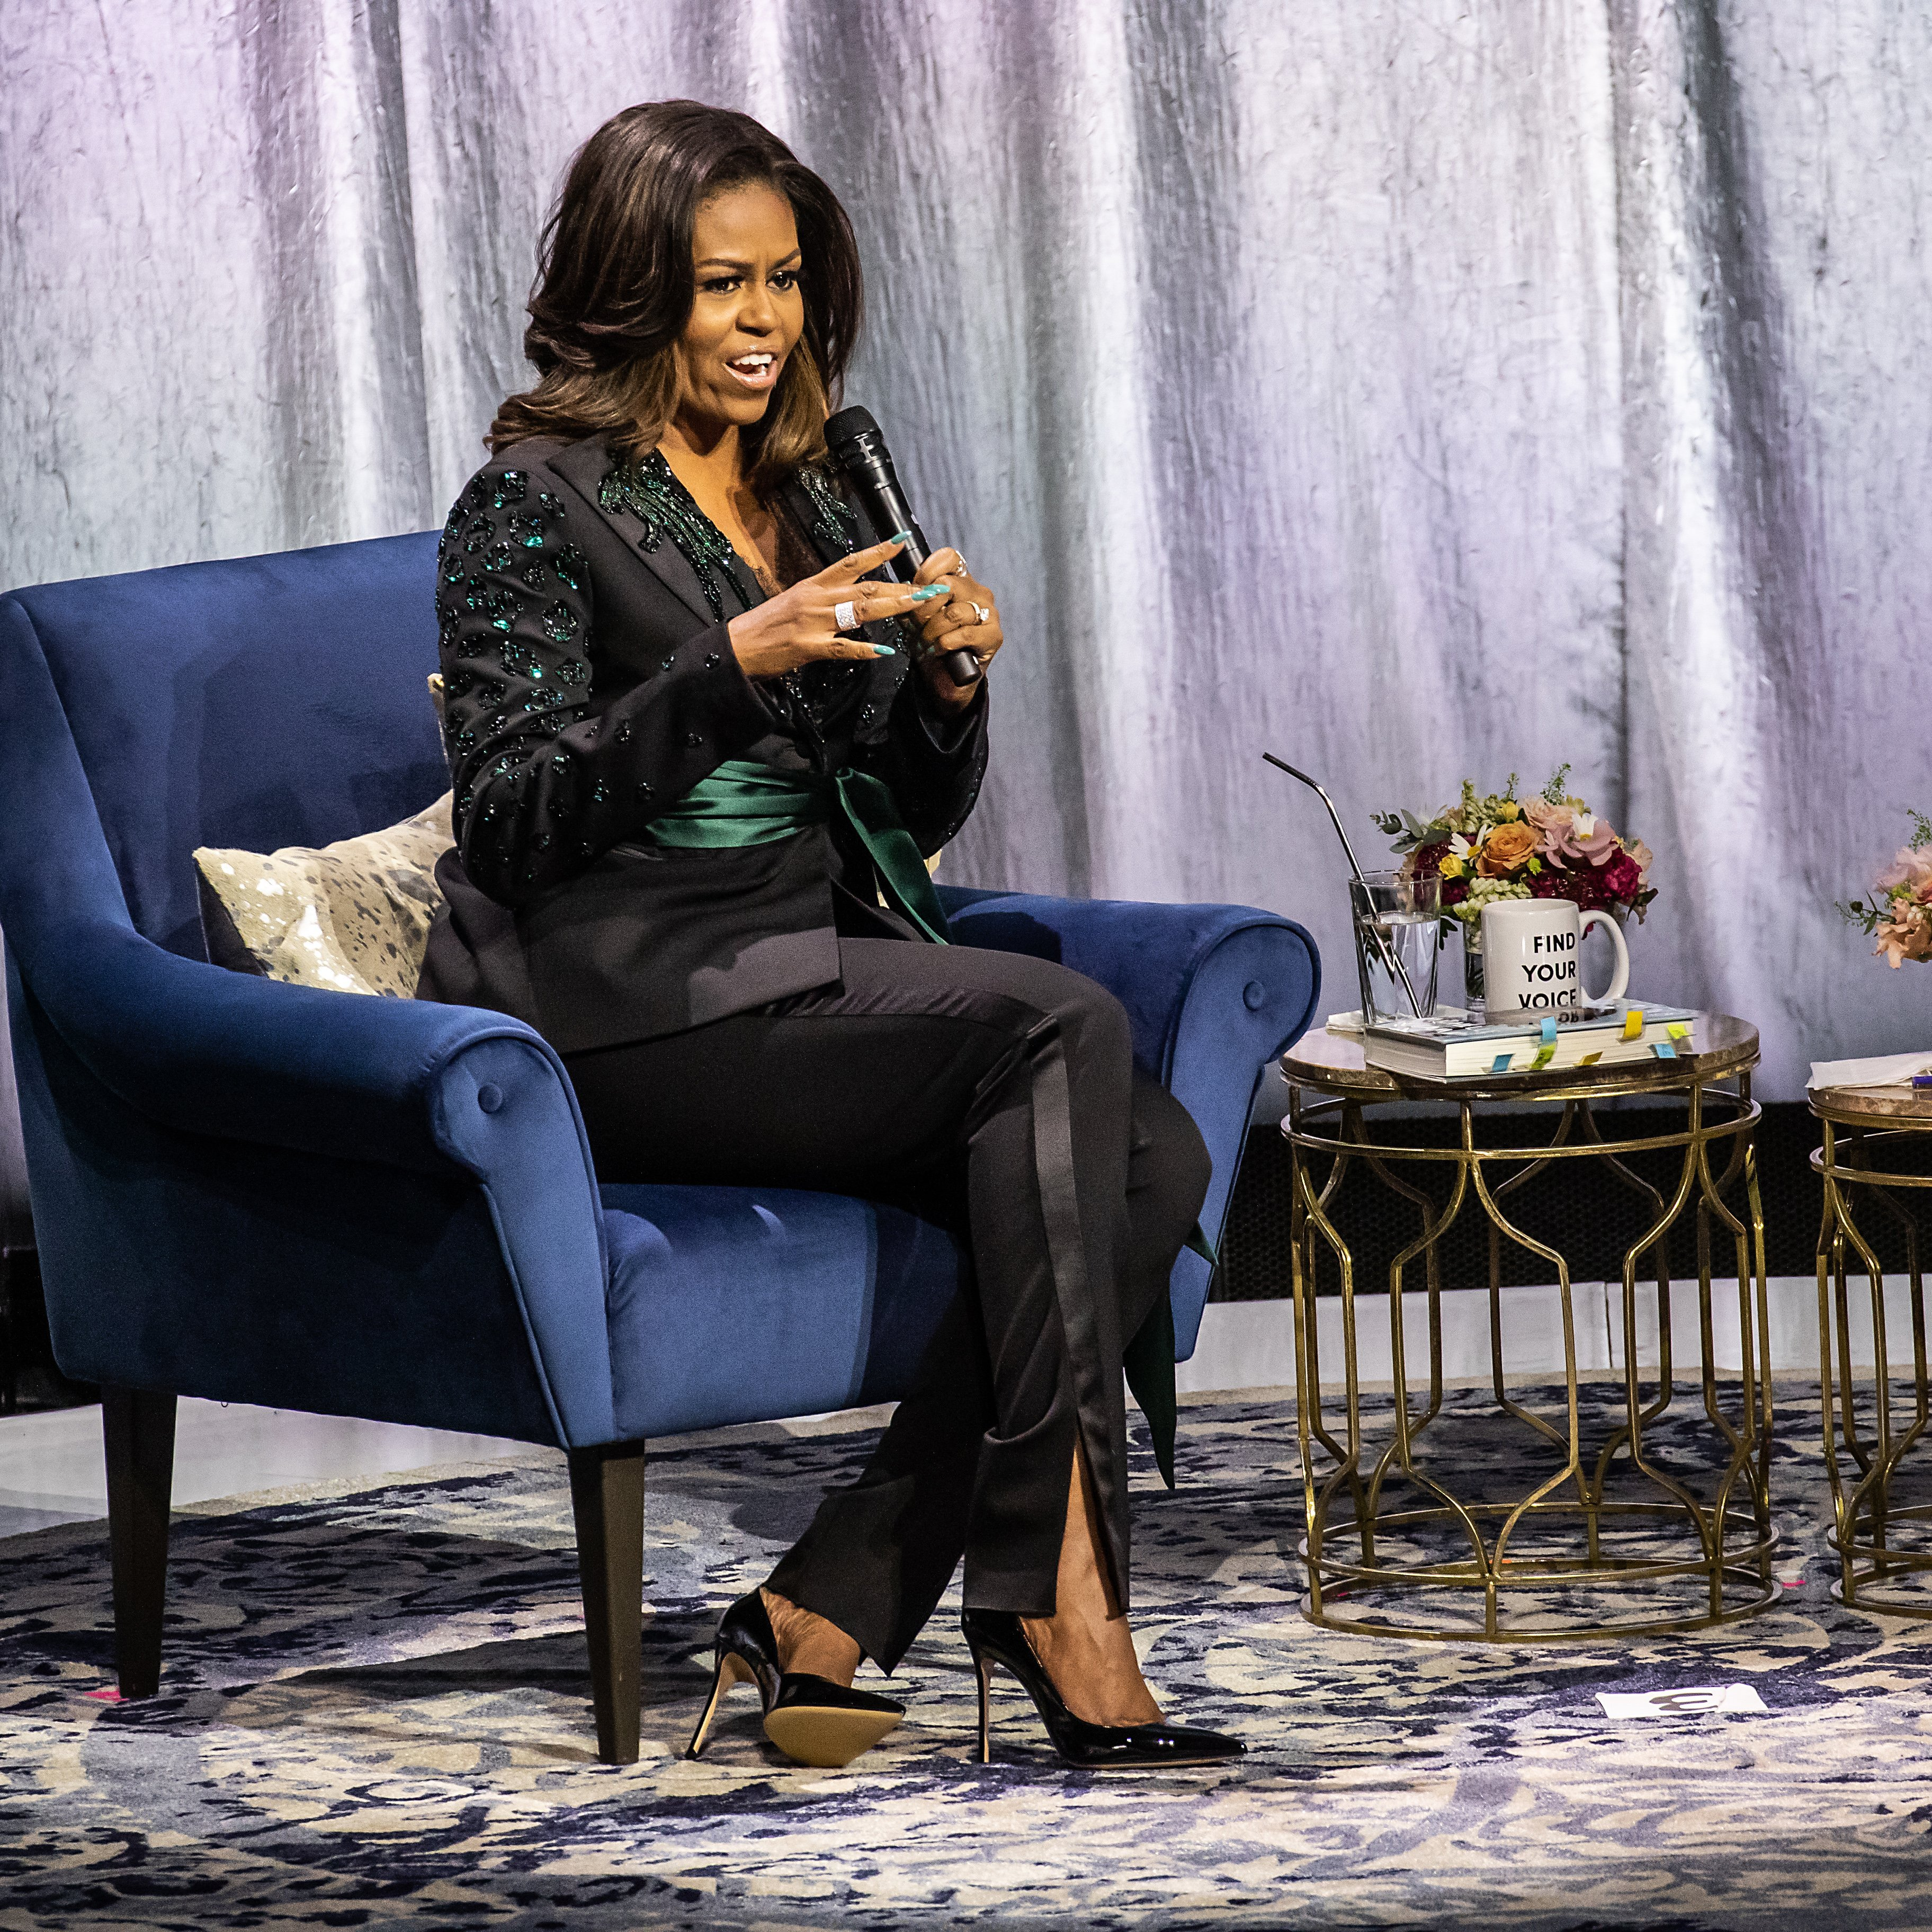 Michelle Obama held a conversation with Phoebe Robinson about her book 'Becoming' at Oslo Spektrum on April 11, 2019 in Oslo, Norway | Photo: Getty Images